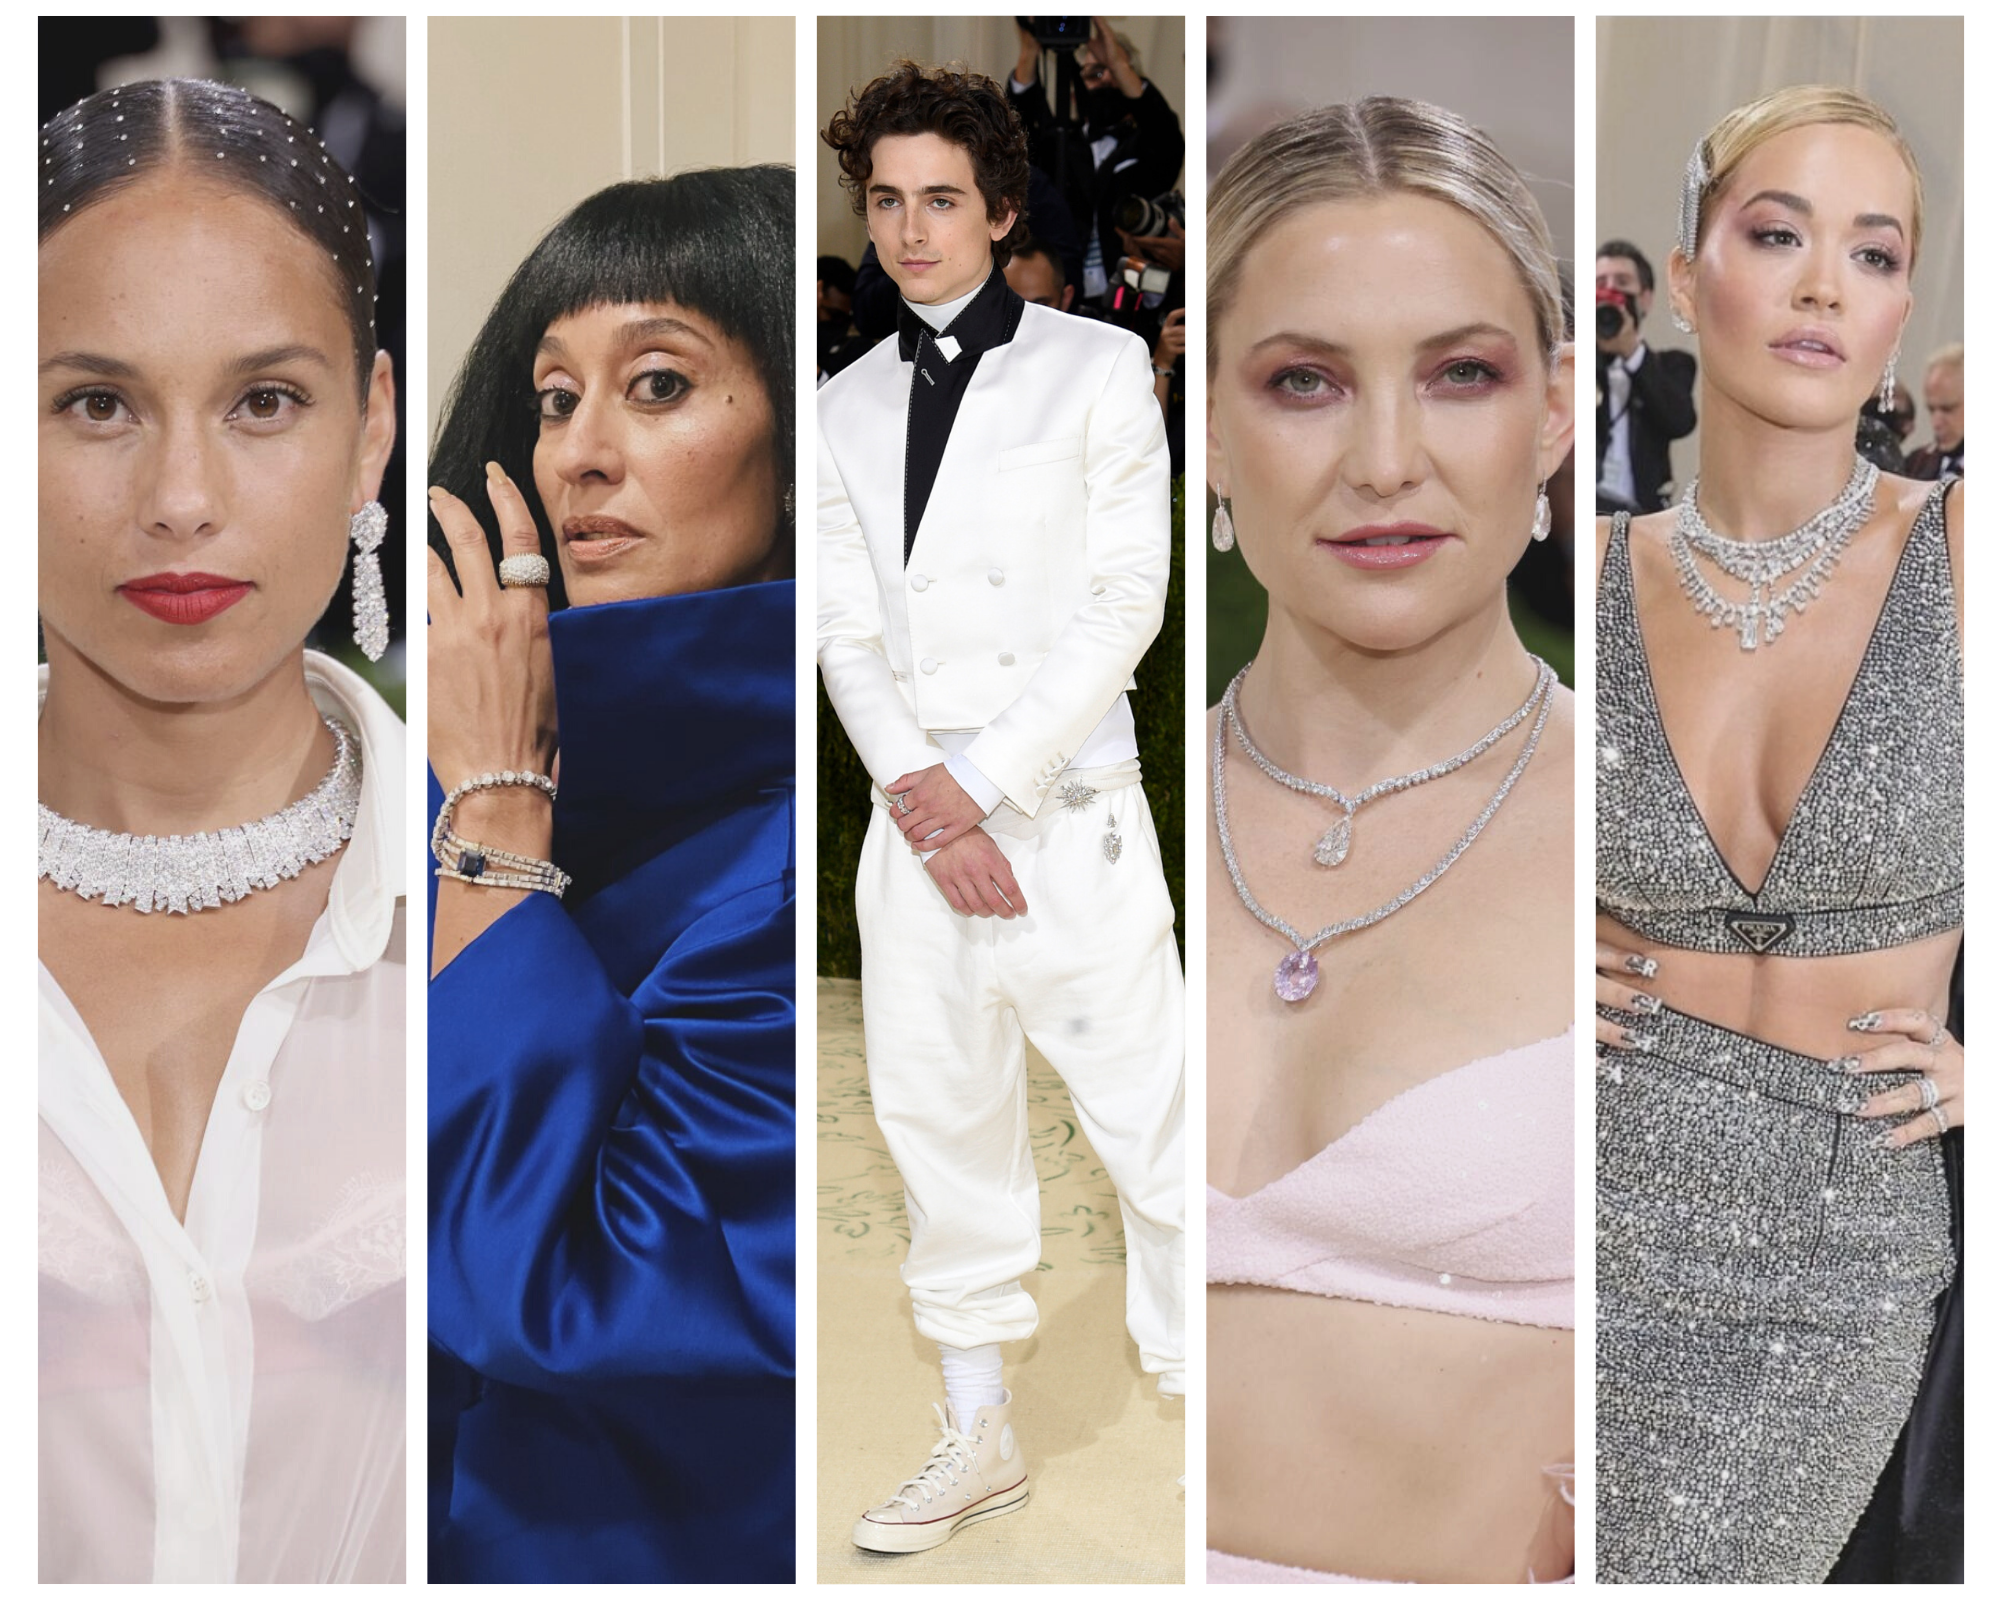 Met Gala 2021: Our Favorite Pieces from the Red Carpet